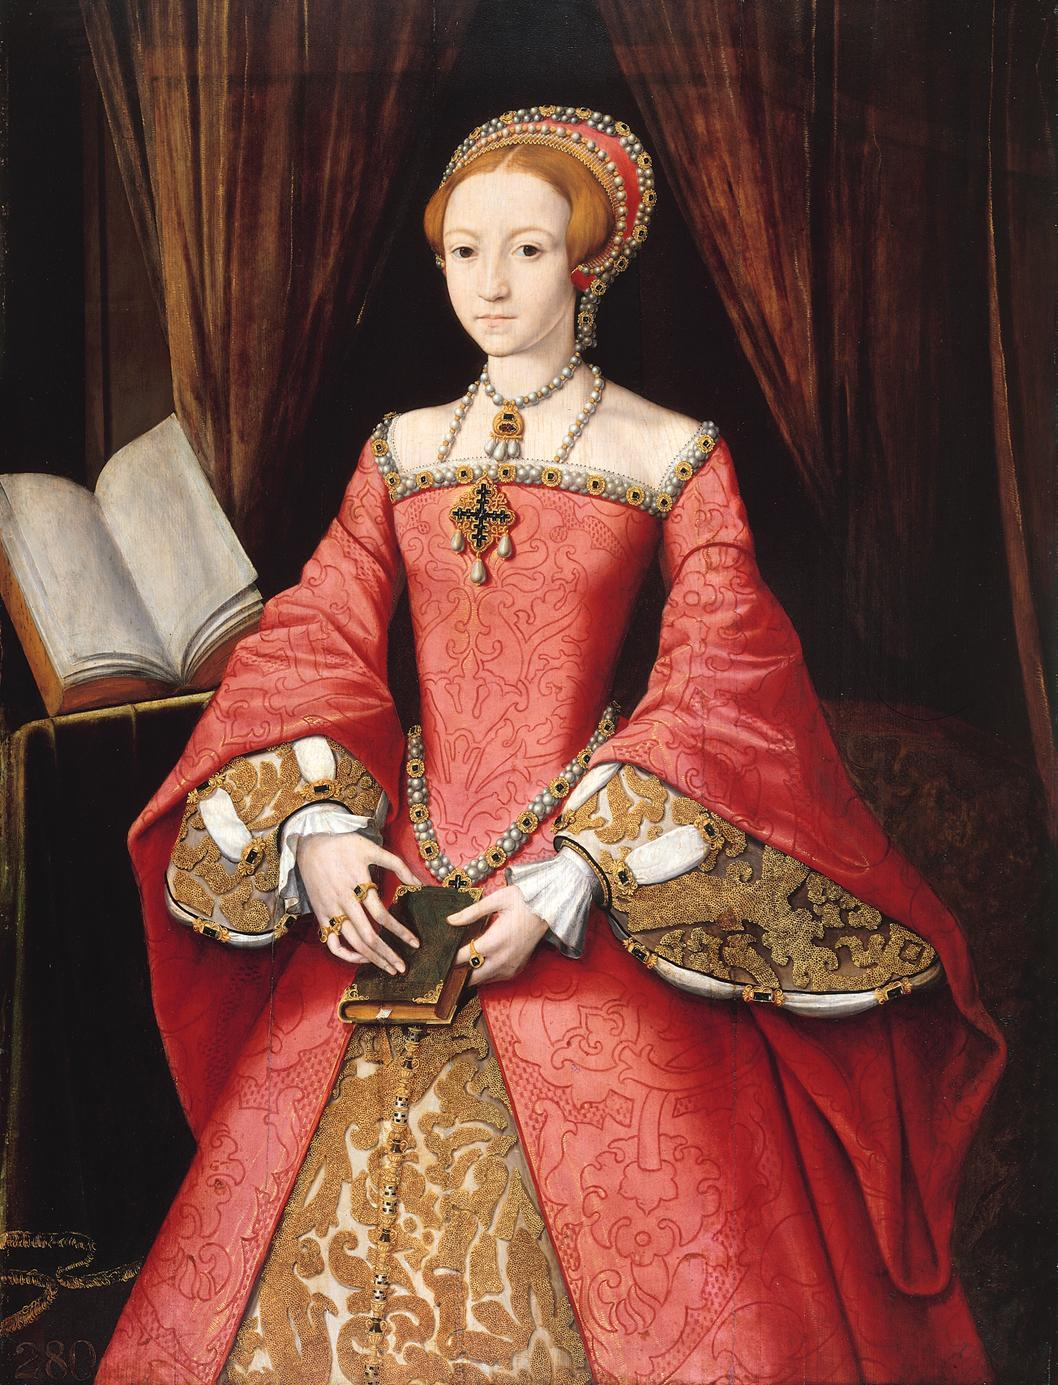 What did Elizabethan women do to follow Elizabeth I in terms of fashion?